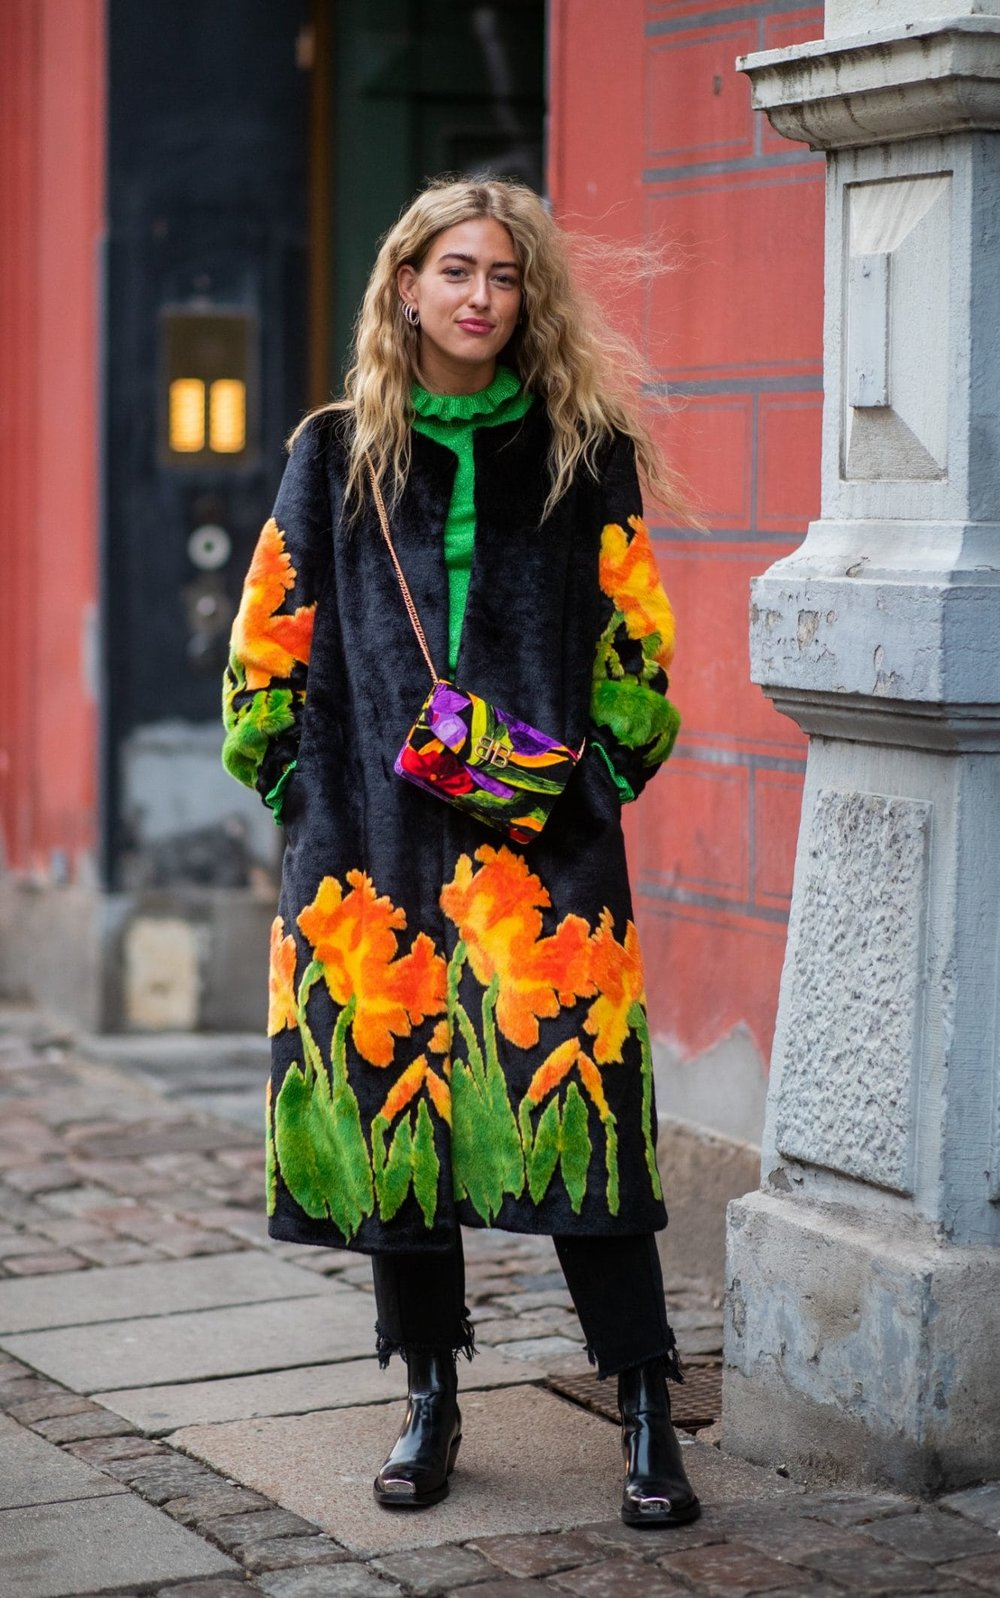 Emili Sindlev looks great in this statement coat, great choice for when your outwear needs to do the talking. Paired perfectly with the contrast bag and patent boots.